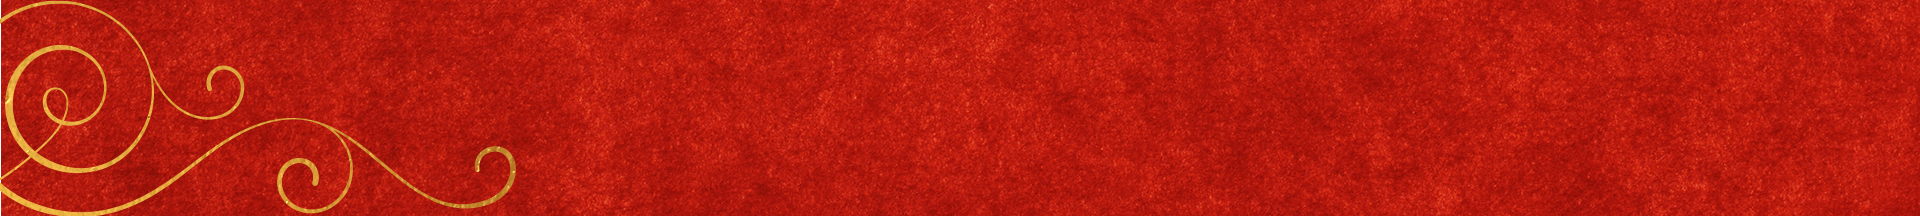 christmas graphic pack - red and gold